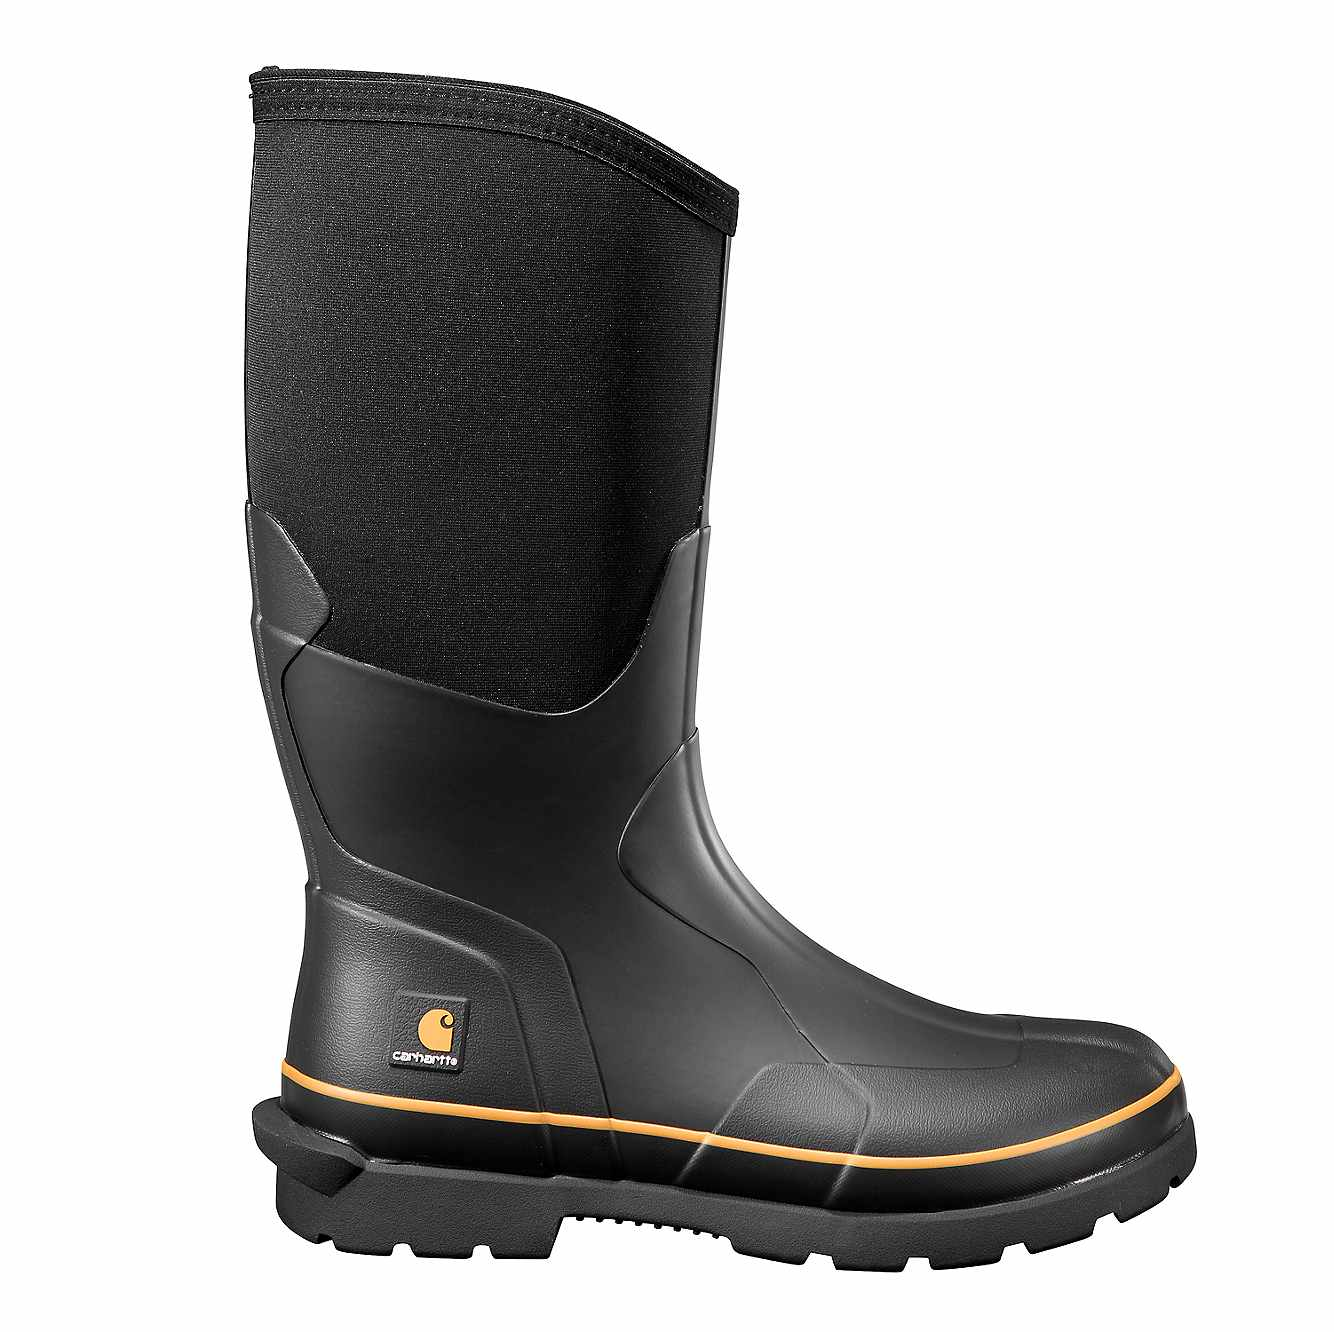 Picture of Mudrunner 15-Inch Carbon Nano Toe Rubber Boot in Black